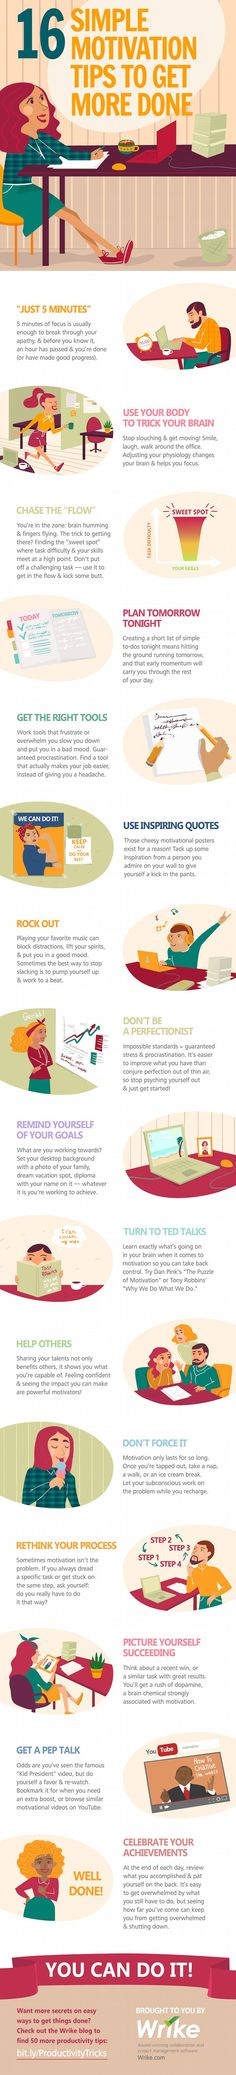 16 Easy to try. Easy to incorporate and very effective Motivation Tips To Get More Done - #Infographic